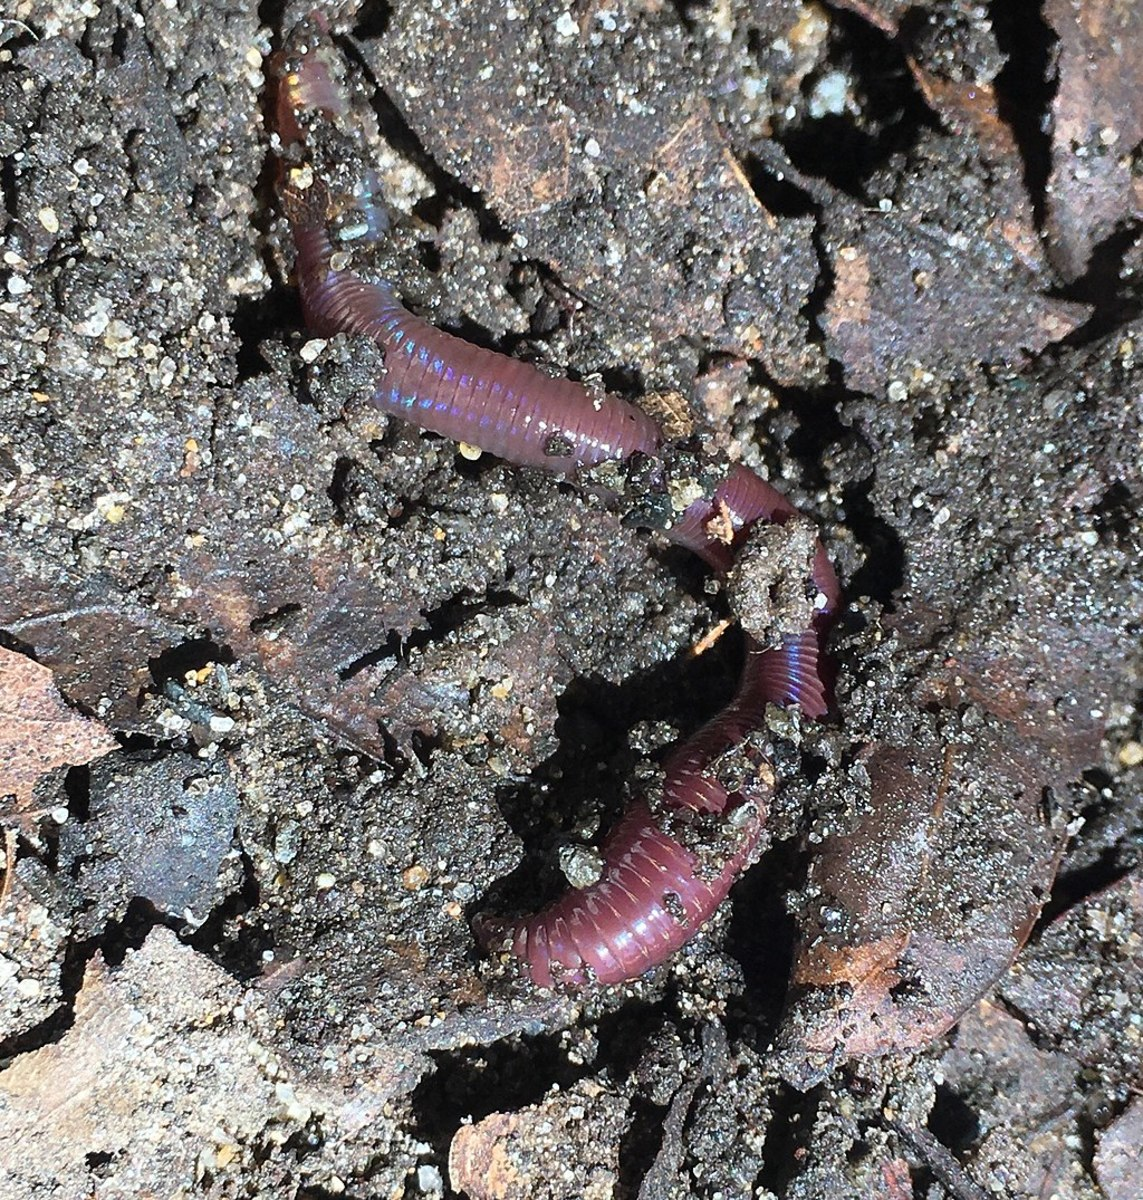 Soil is an example of a microecosystem.